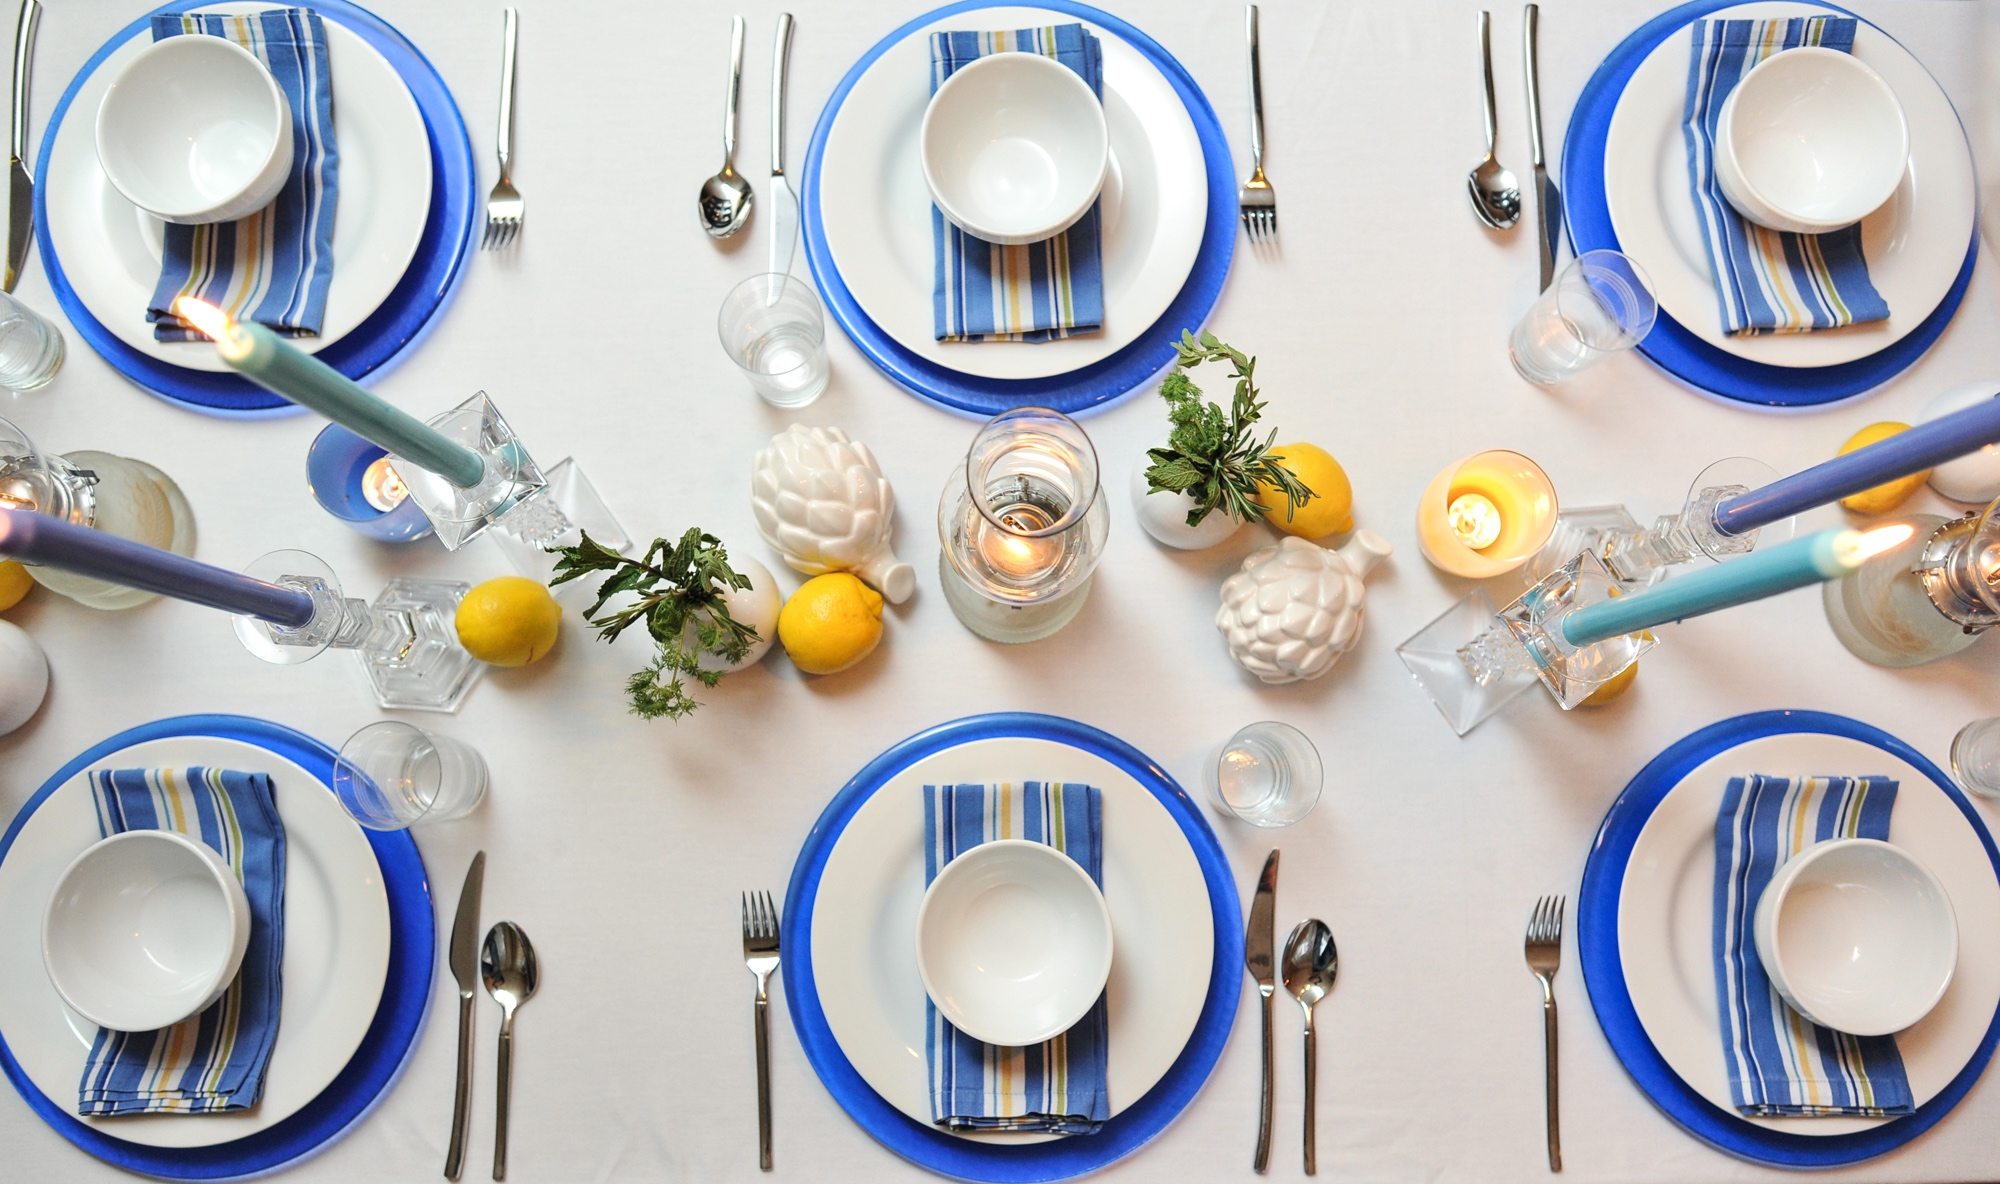 & Greek Table setting